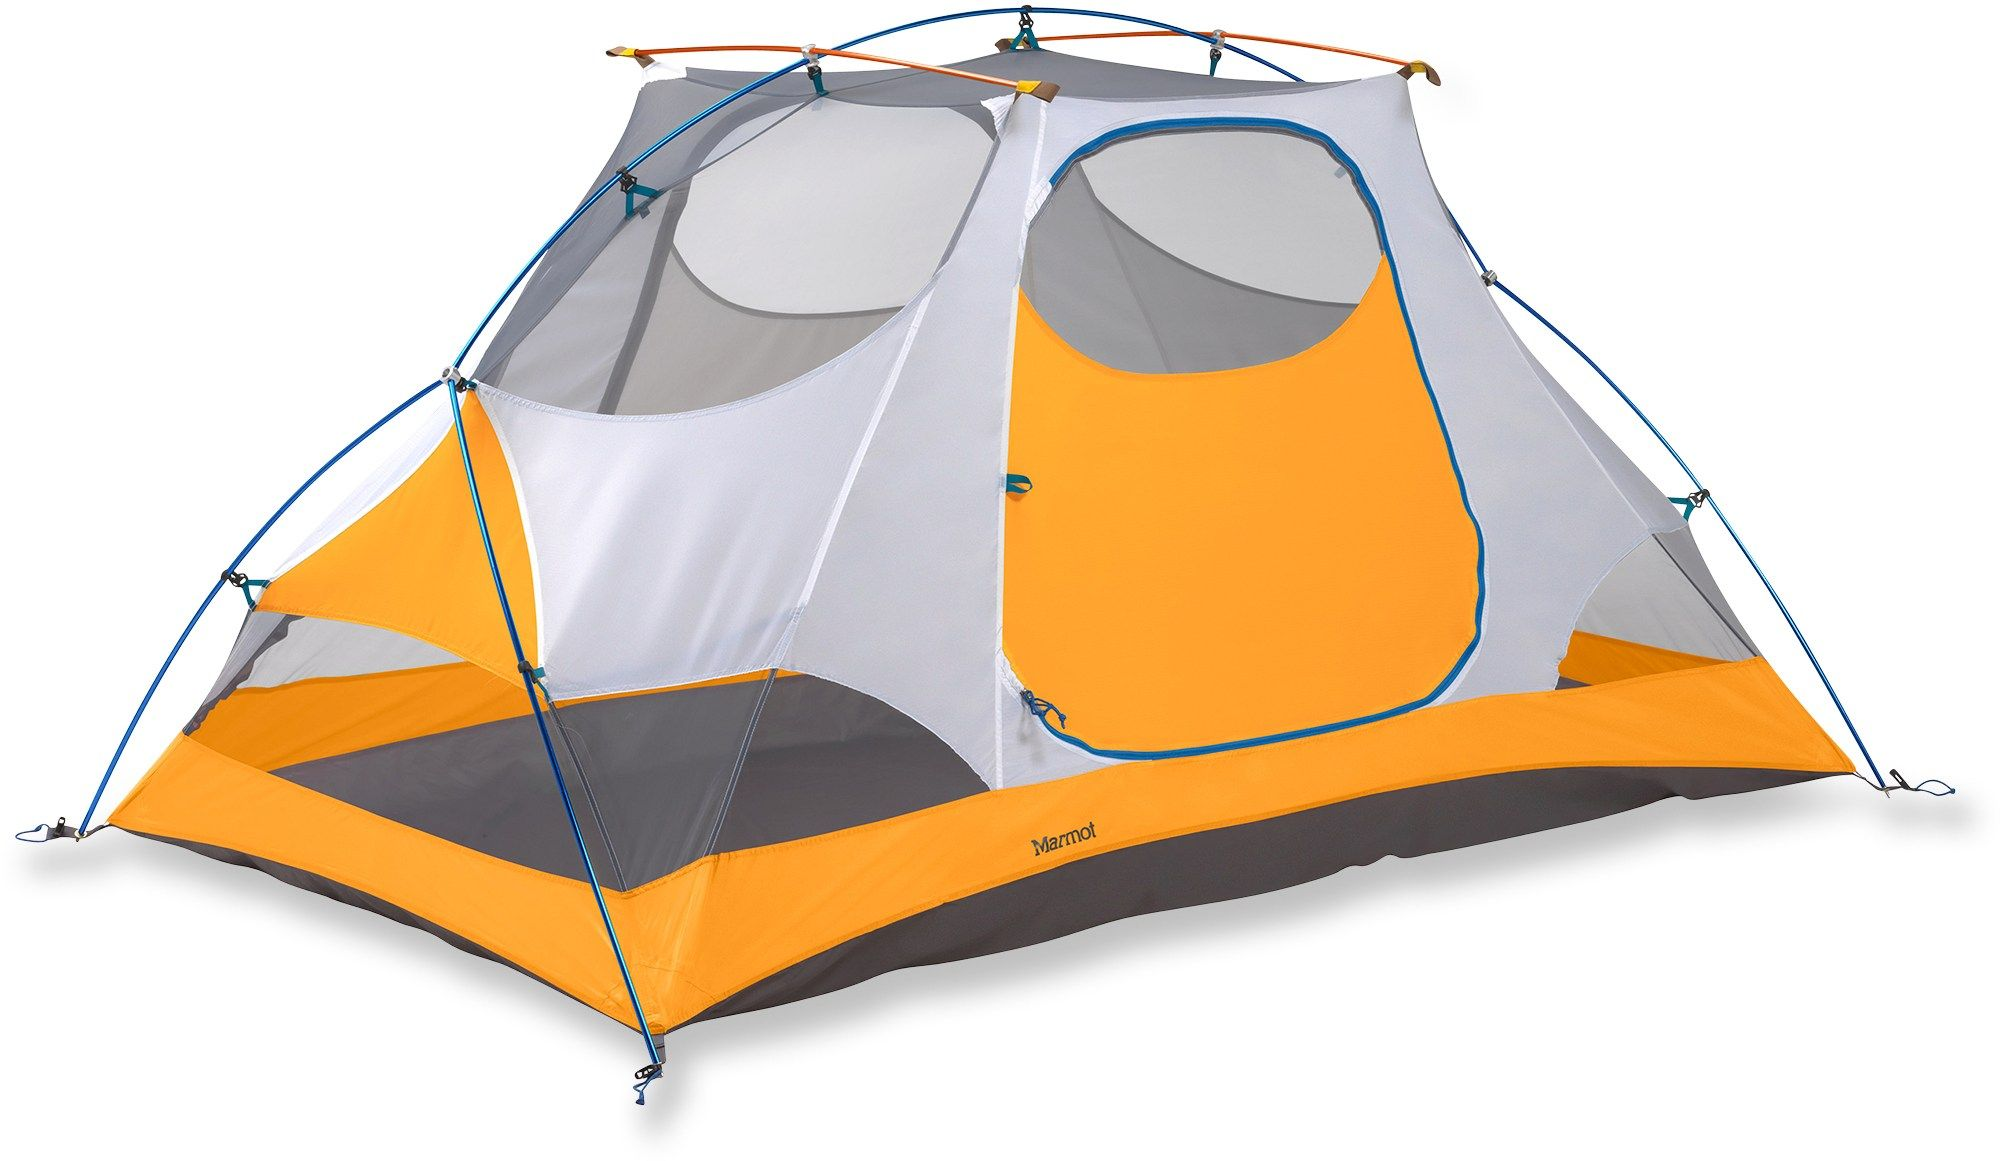 Marmot Firefly 2P Tent - Free Shipping at REI.com  sc 1 st  Pinterest & Marmot Firefly 2P Tent - Free Shipping at REI.com | camping/ beach ...